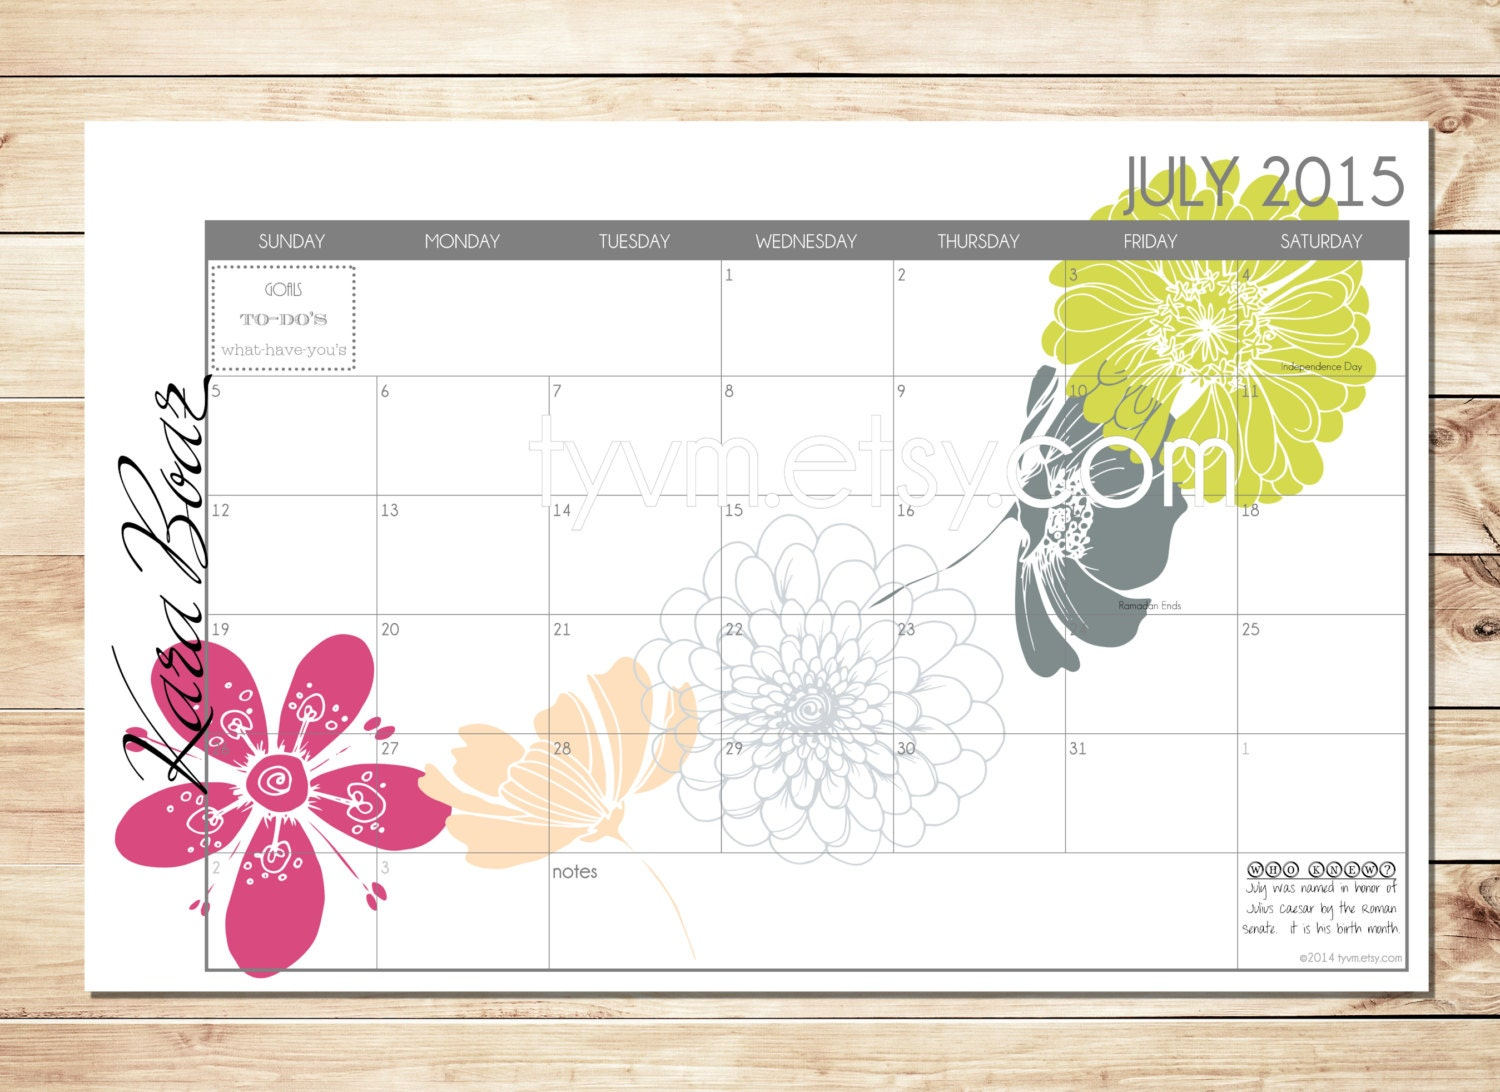 how to make a personalized desk calendar